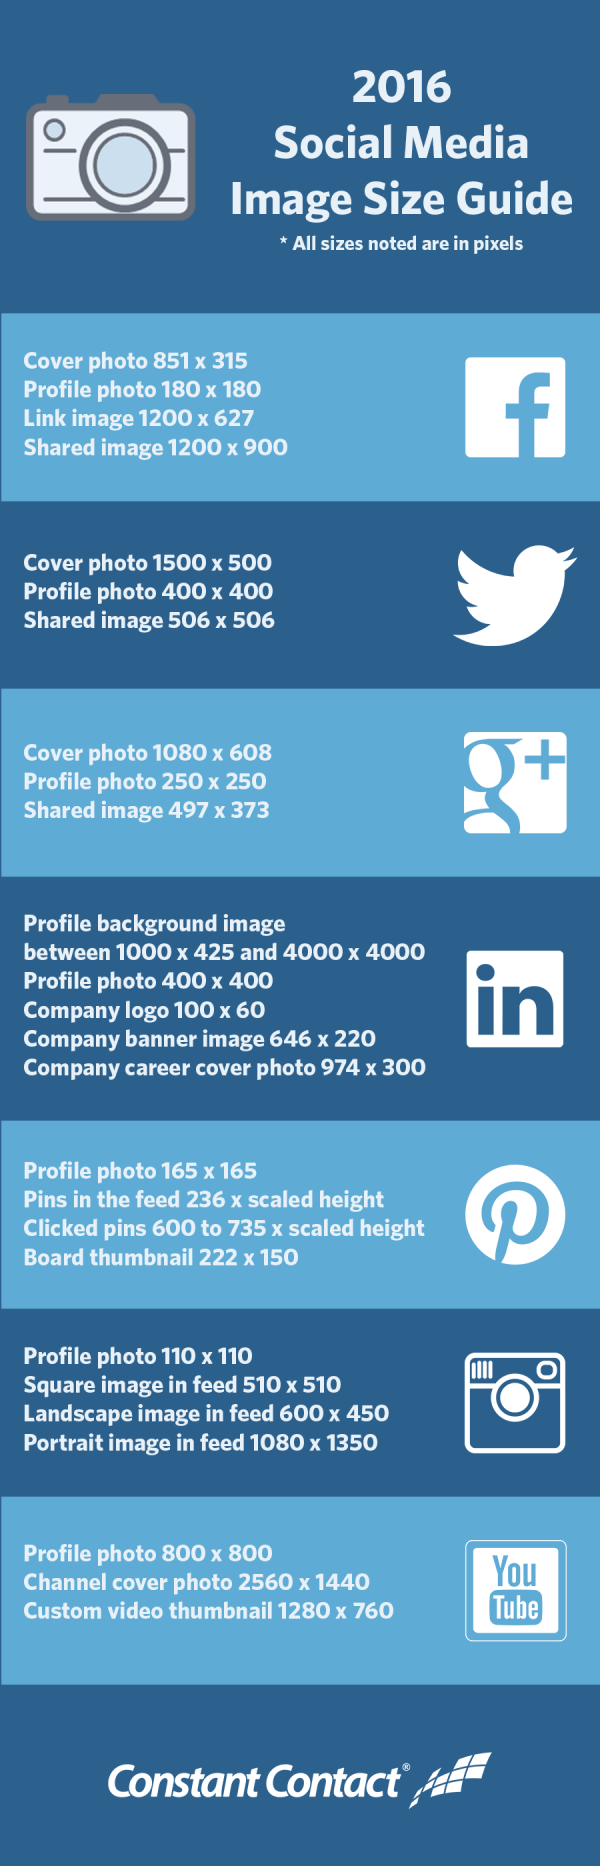 2016 social media image cheat sheet